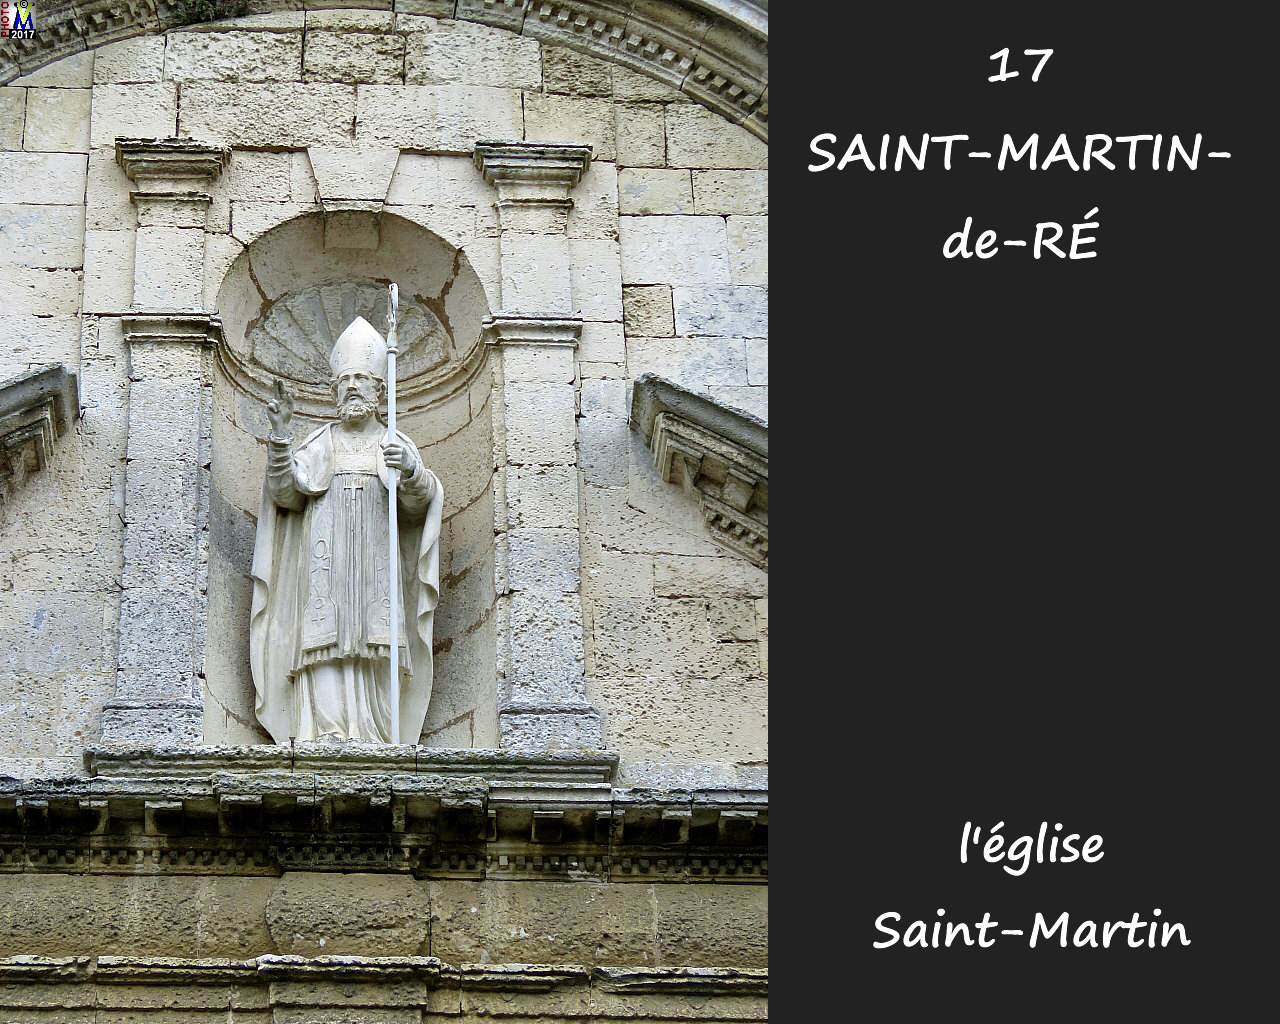 17StMARTIN-RE_eglise_1016.jpg